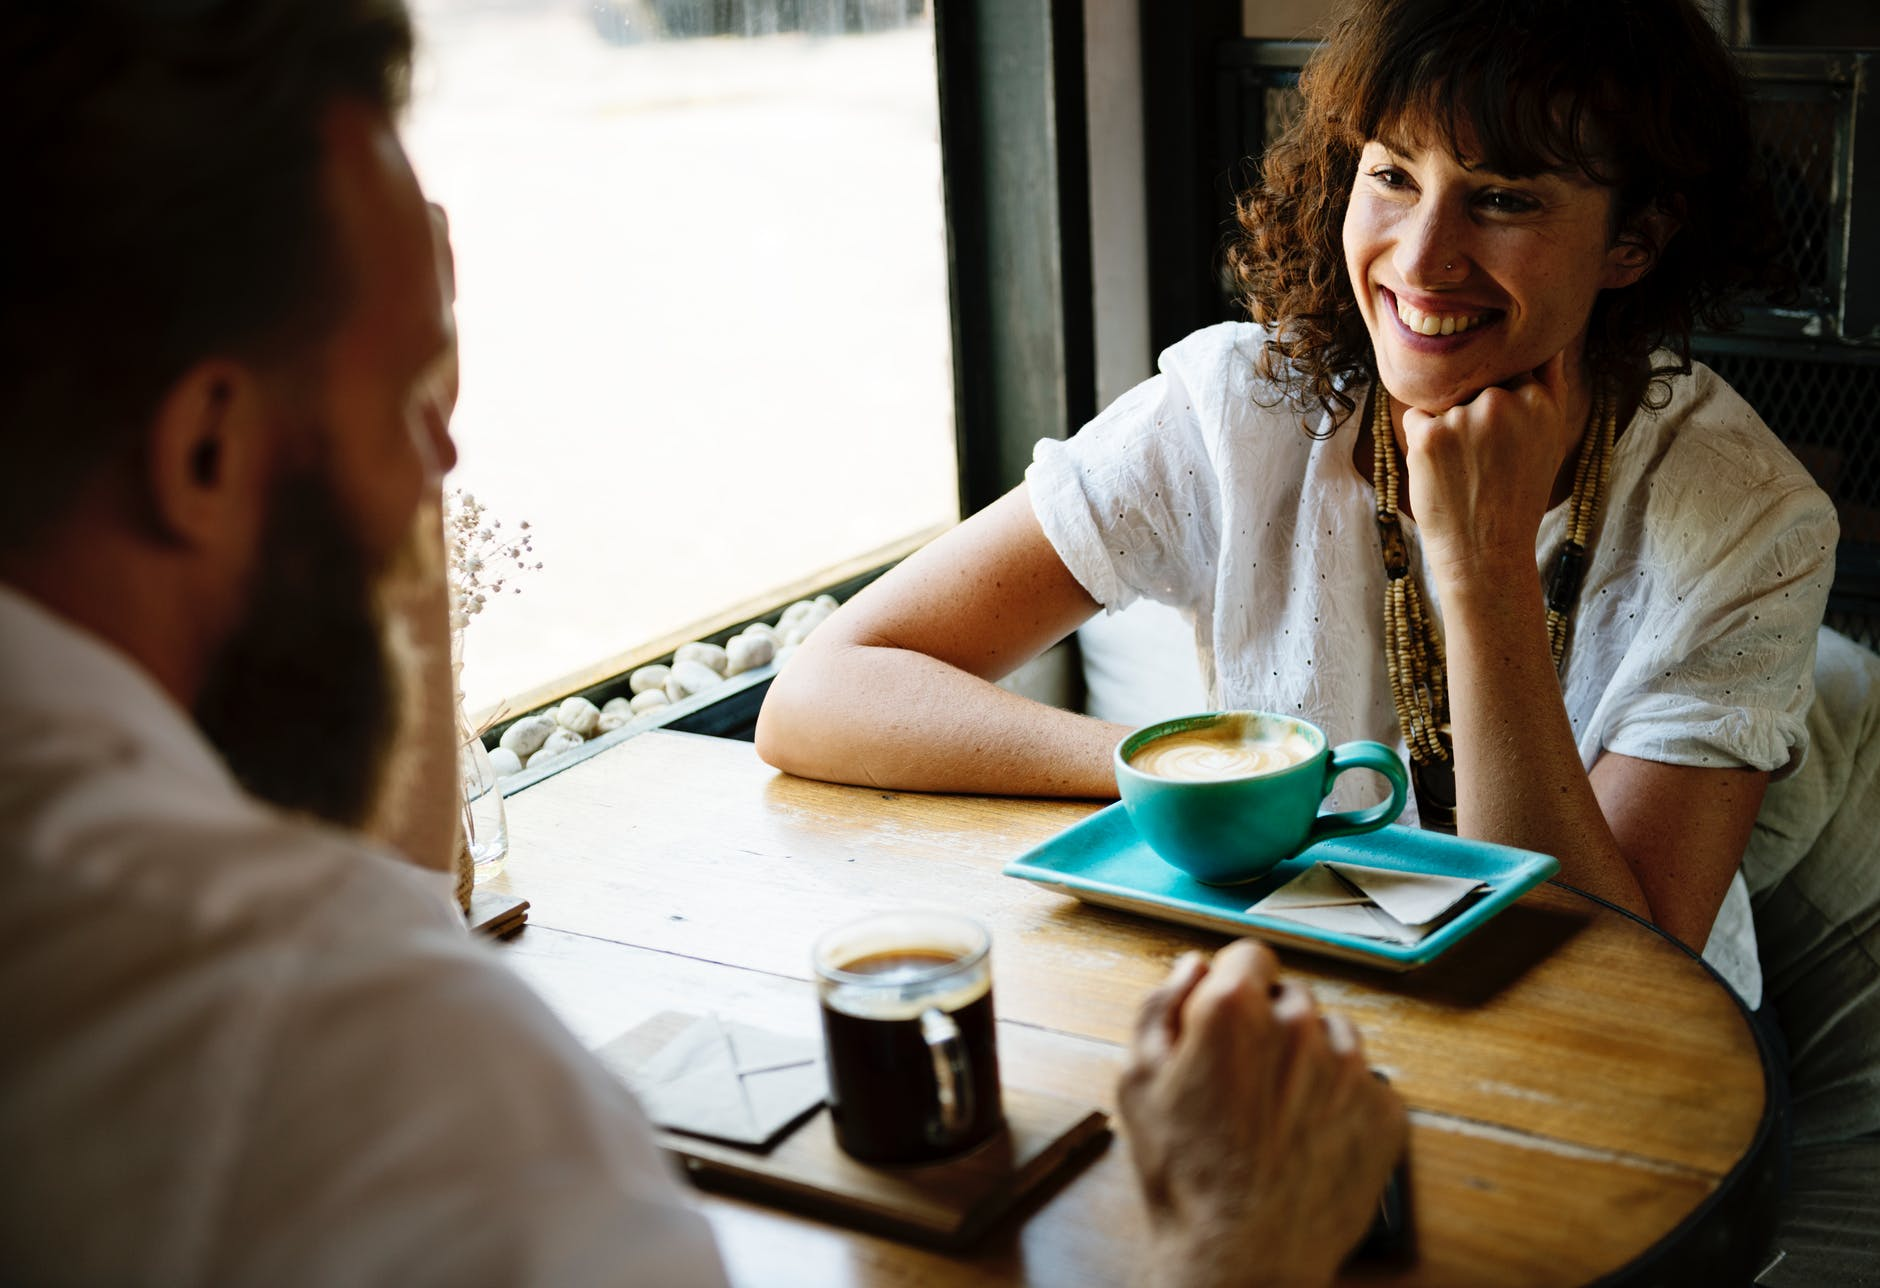 A man and a girl having a chat over coffee. | Source: Pexels